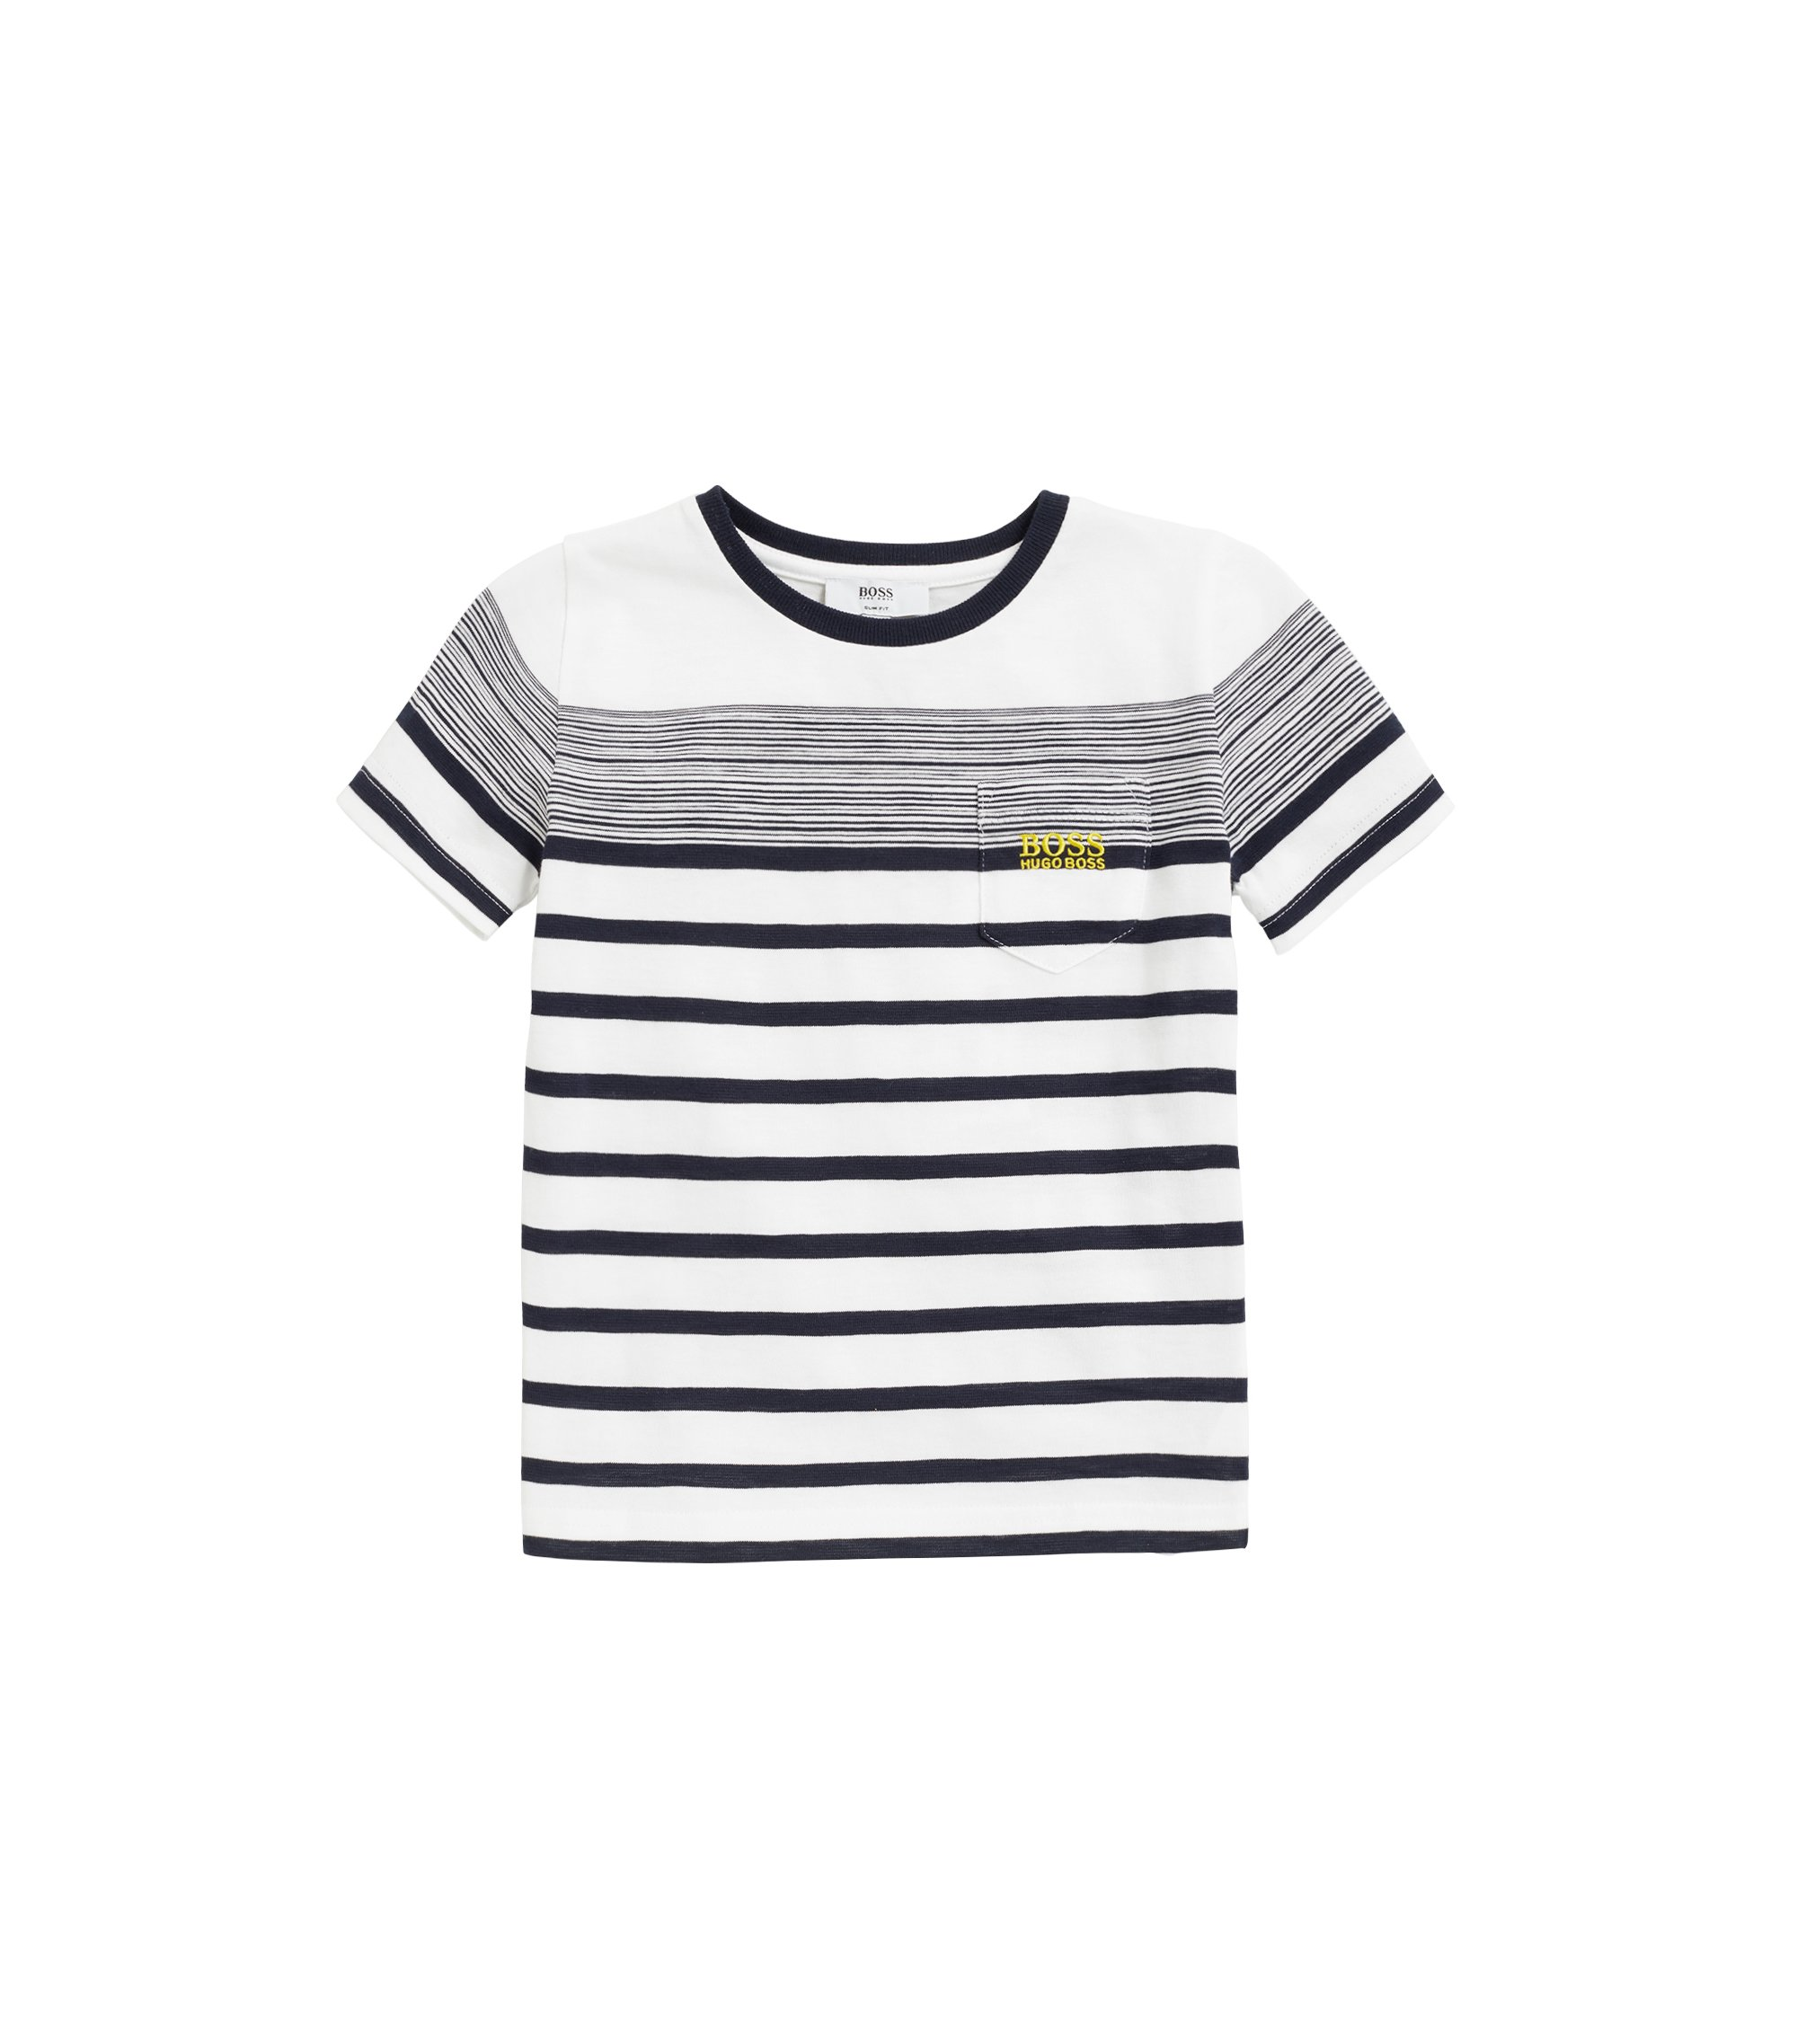 Kids' Breton-striped T-shirt in slub-cotton jersey, White